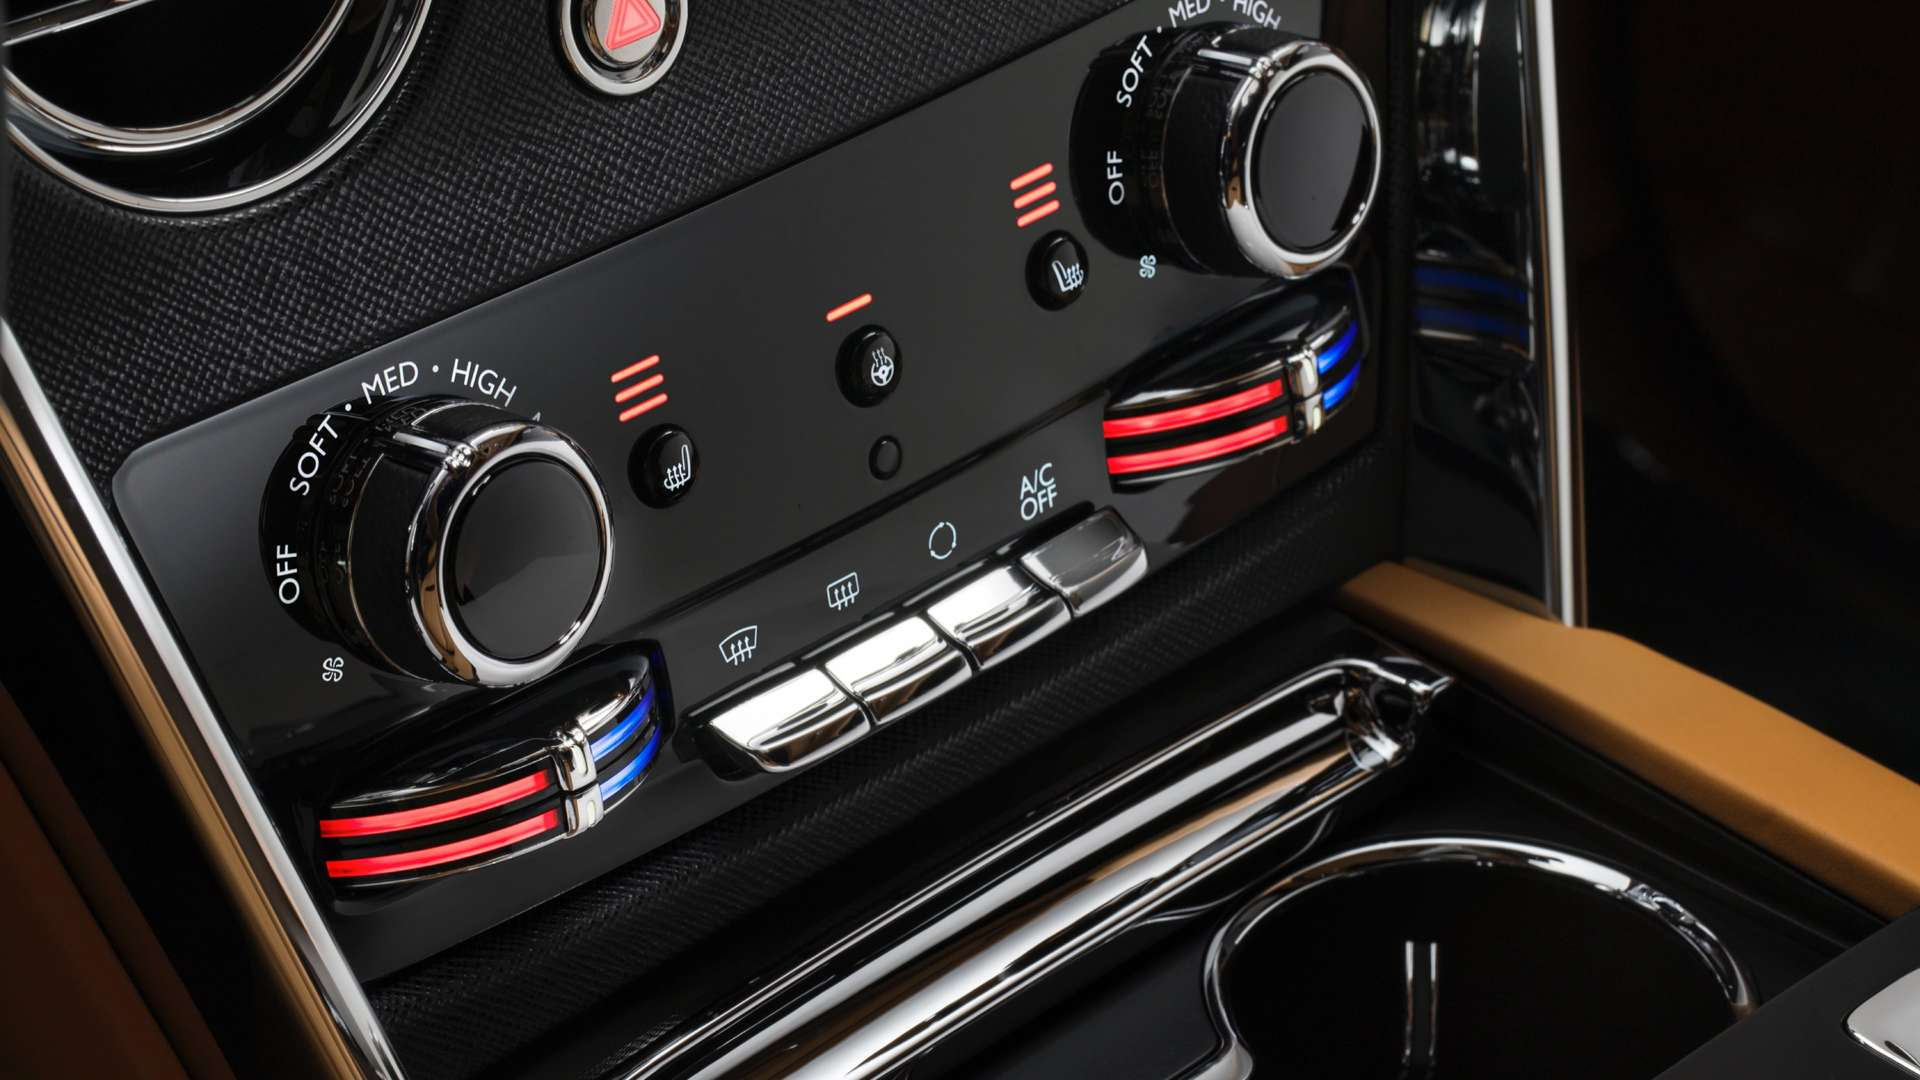 The gallery controls of the Rolls-Royce Cullinan.